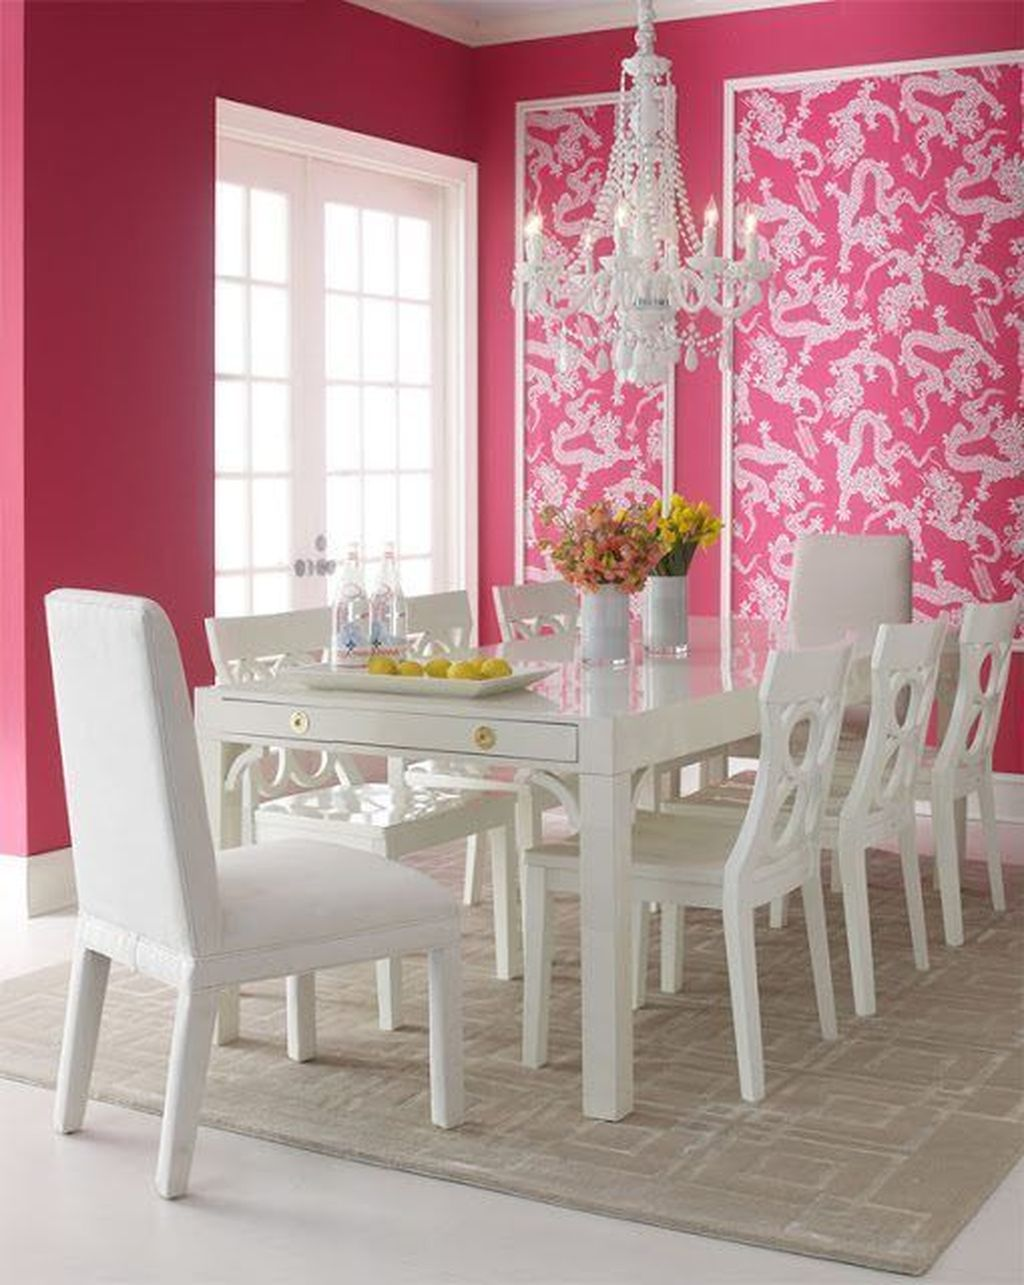 Romantic Dining Room: Stunning Romantic Dining Room Decor Ideas Best For